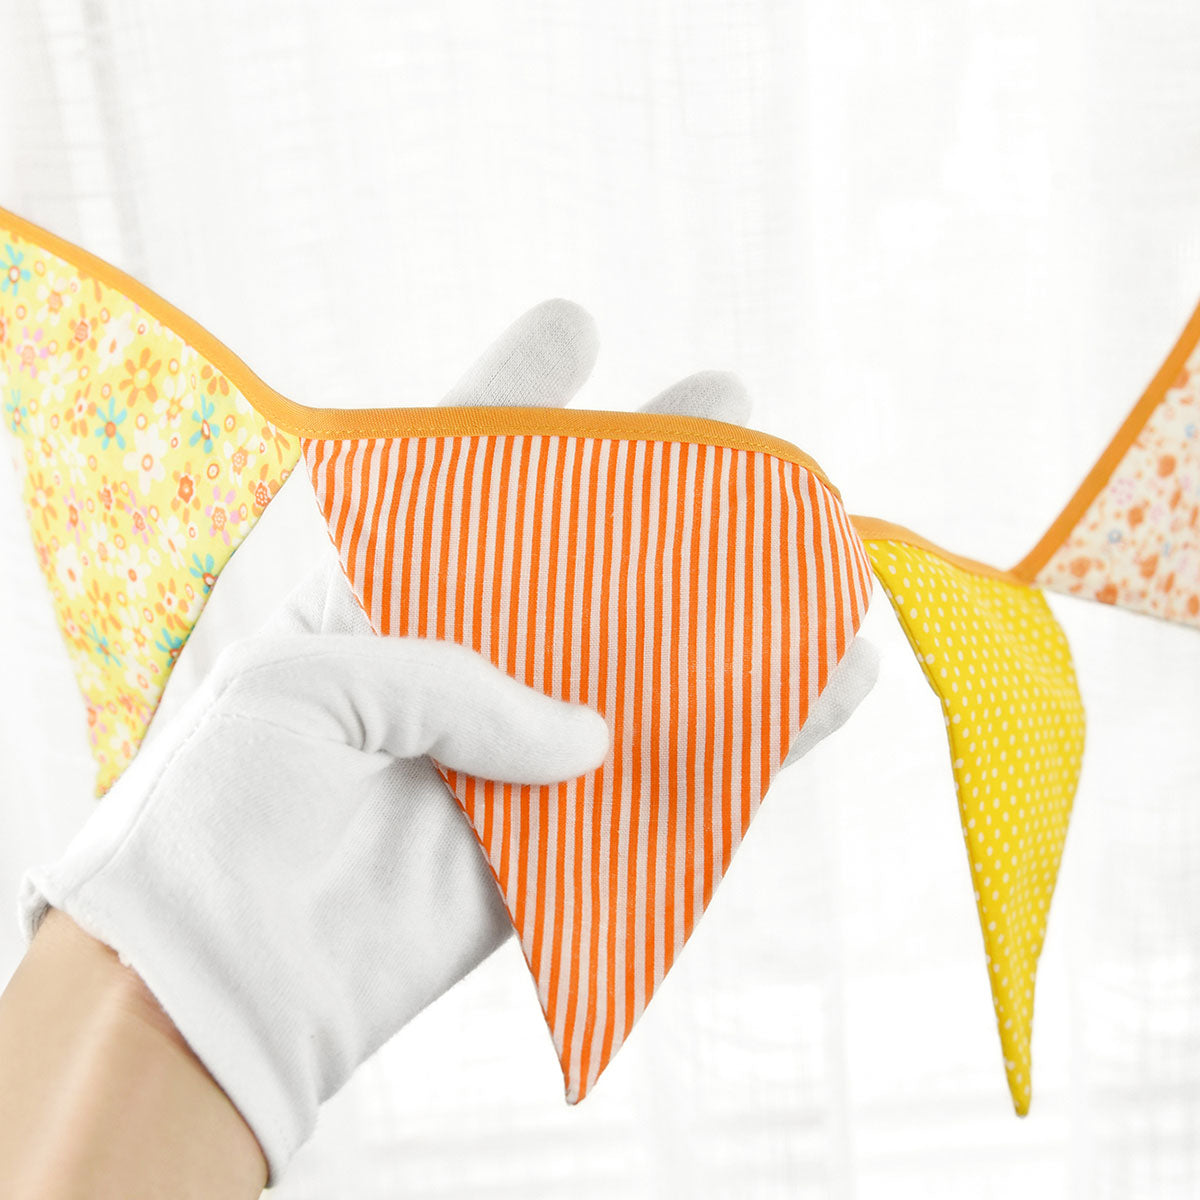 2 Orange Cotton Pennant Banners